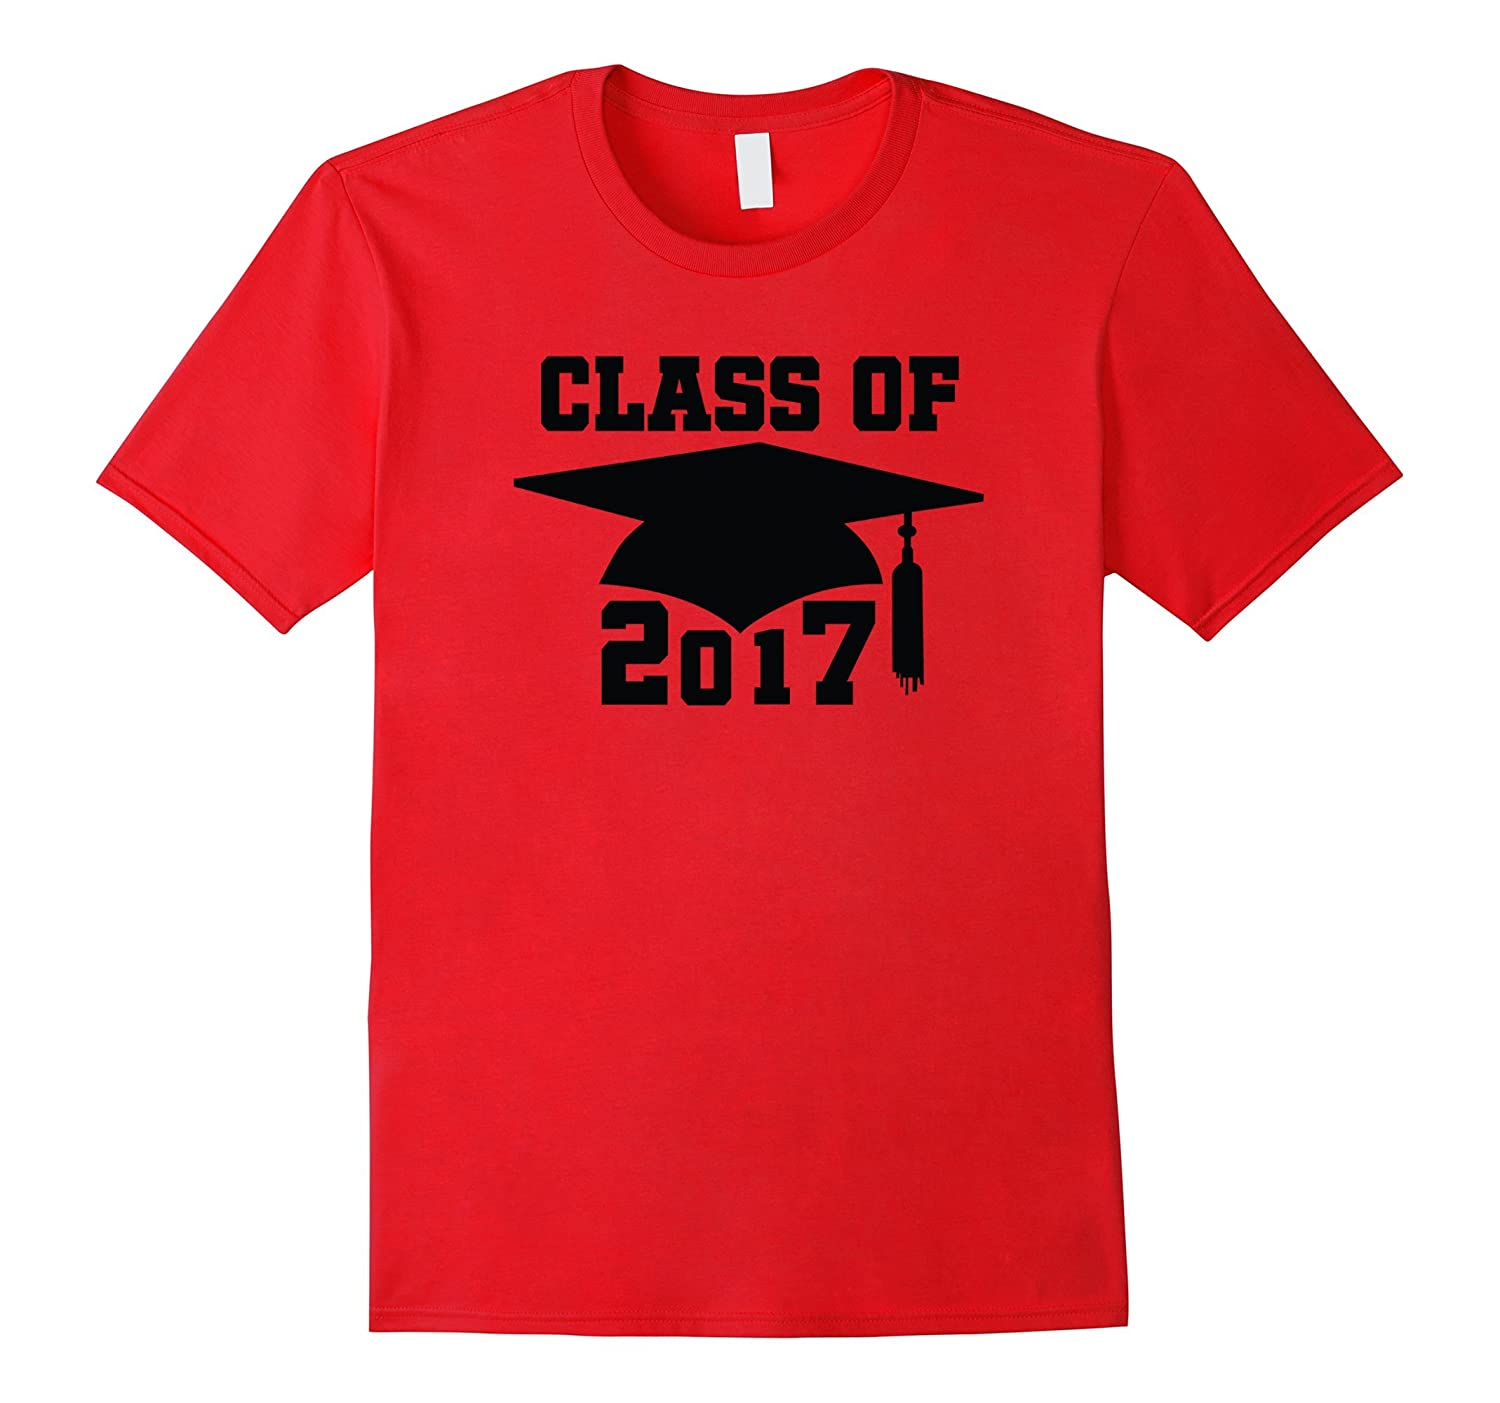 2017 School T-shirt Senior Class Graduation Gift Tee Idea-CL